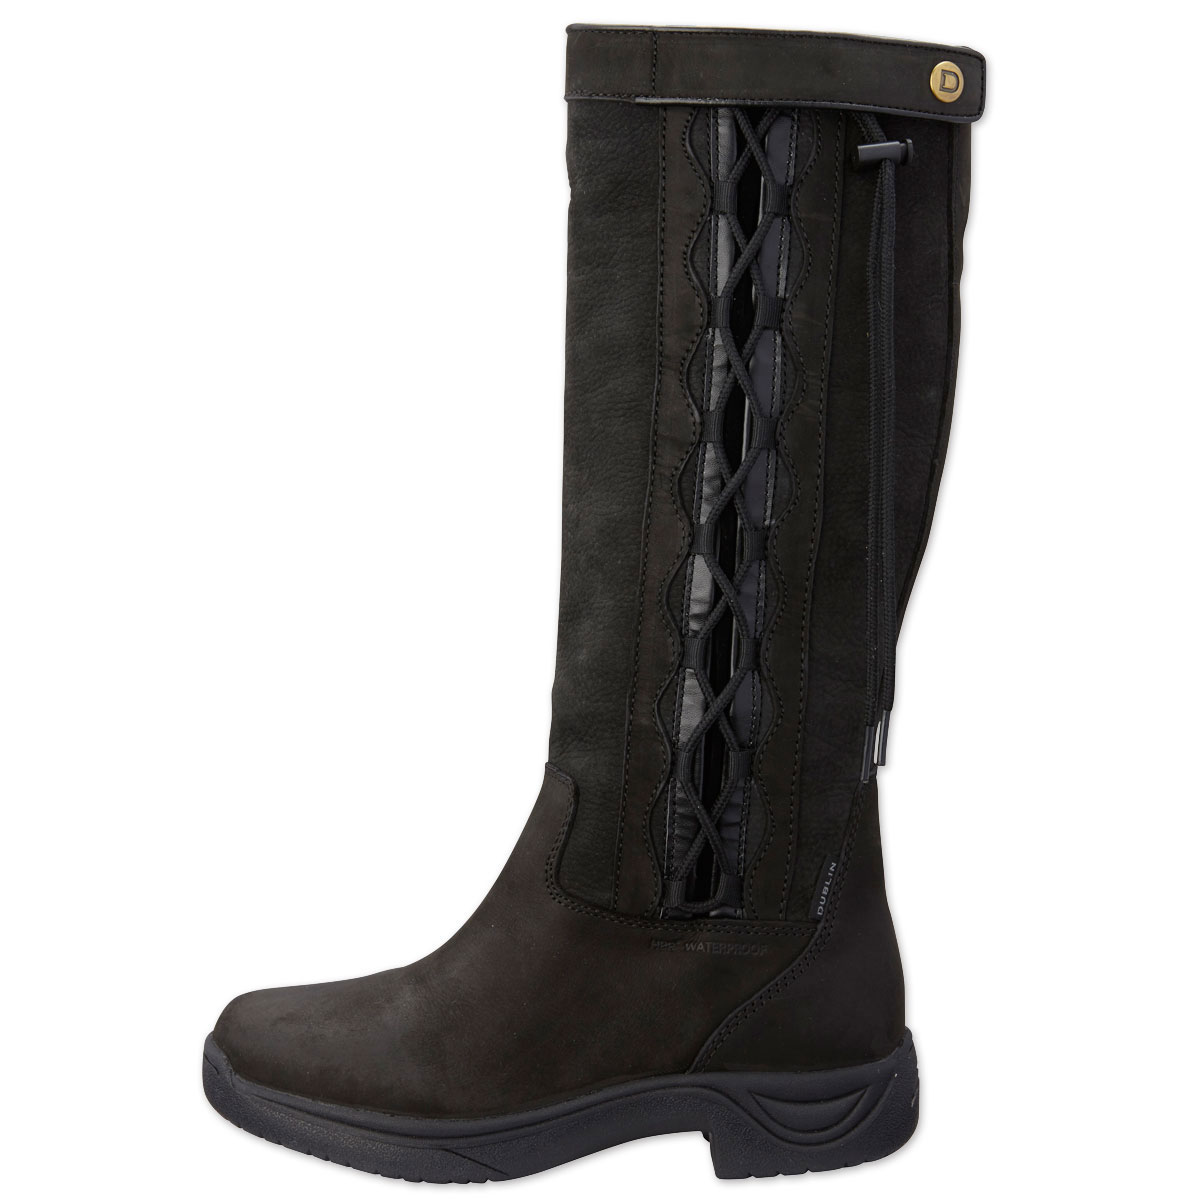 Welcome To Buy Now Dublin Pinnacle Boots